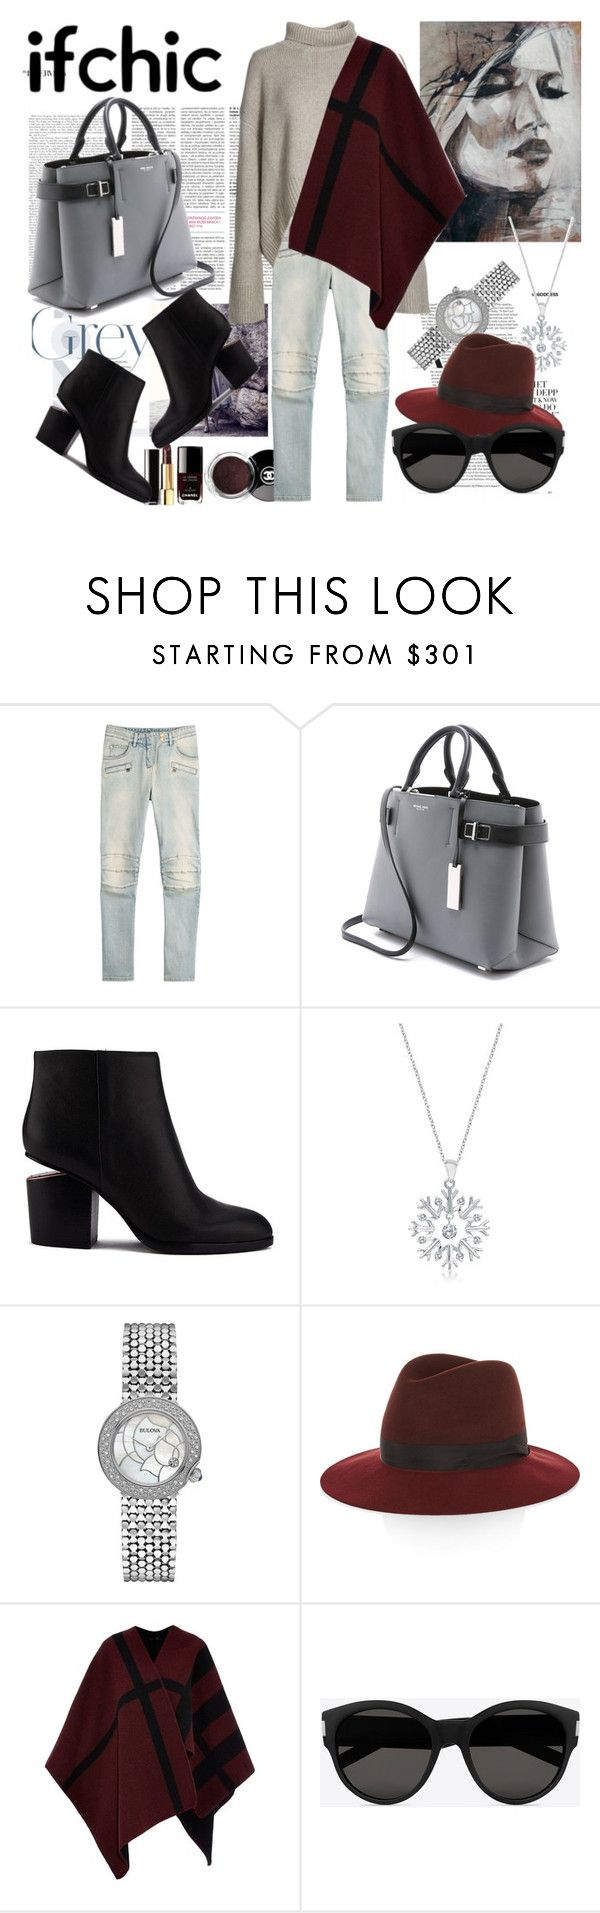 #ifchic by denisa-marcu on Polyvore featuring Burberry, Balmain, Alexander Wang, Michael Kors, Bulova, Allurez, rag & bone, Yves Saint Laurent, Chanel and michaelkors